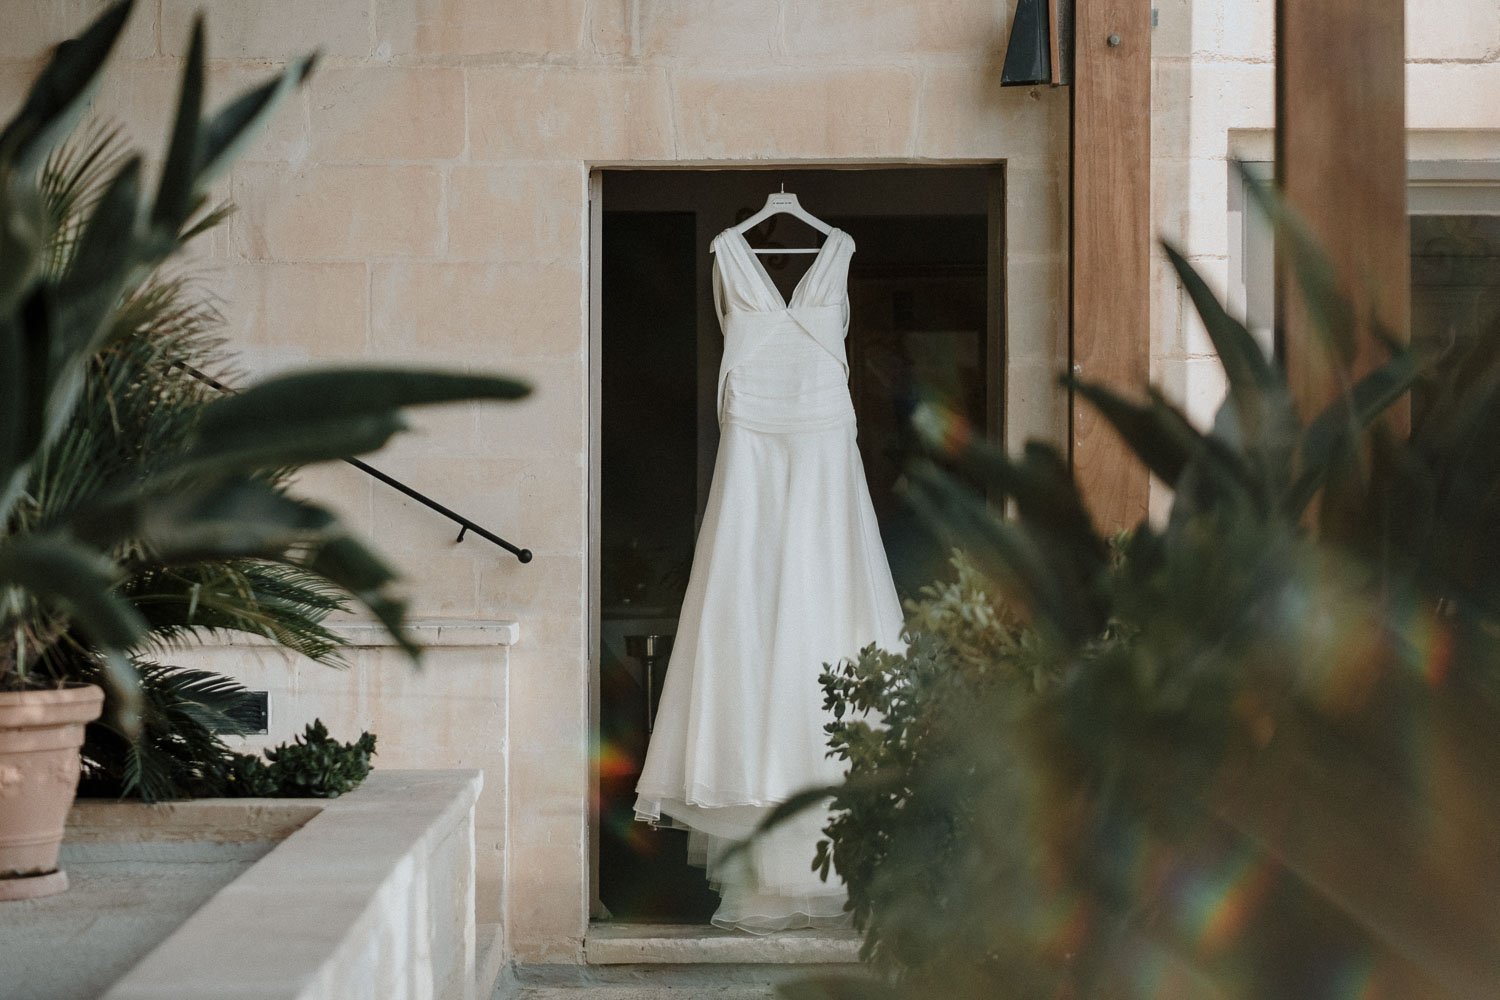 Malta Mdina Destination Wedding Photographer Villa Mdina LozzyRichard Stuart Dudleston Photography 18 1